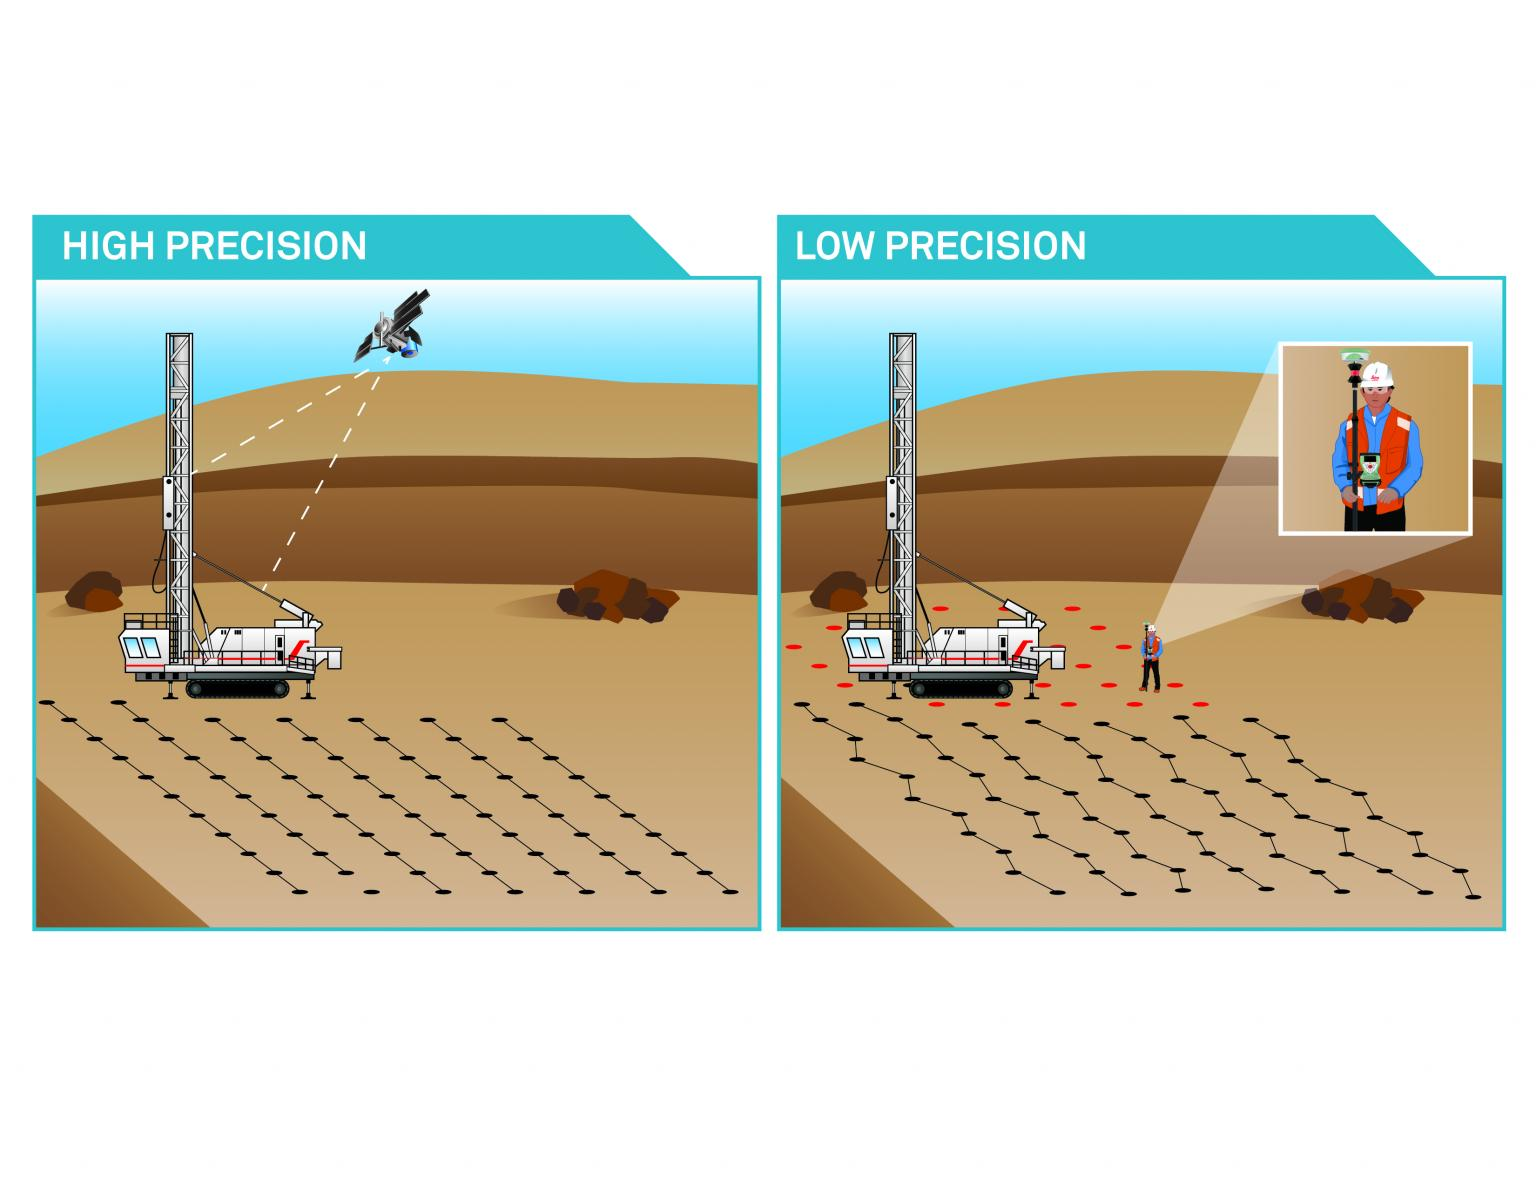 High-precision drilling operations compared to low-precision drilling with a surveyor marking out the pattern